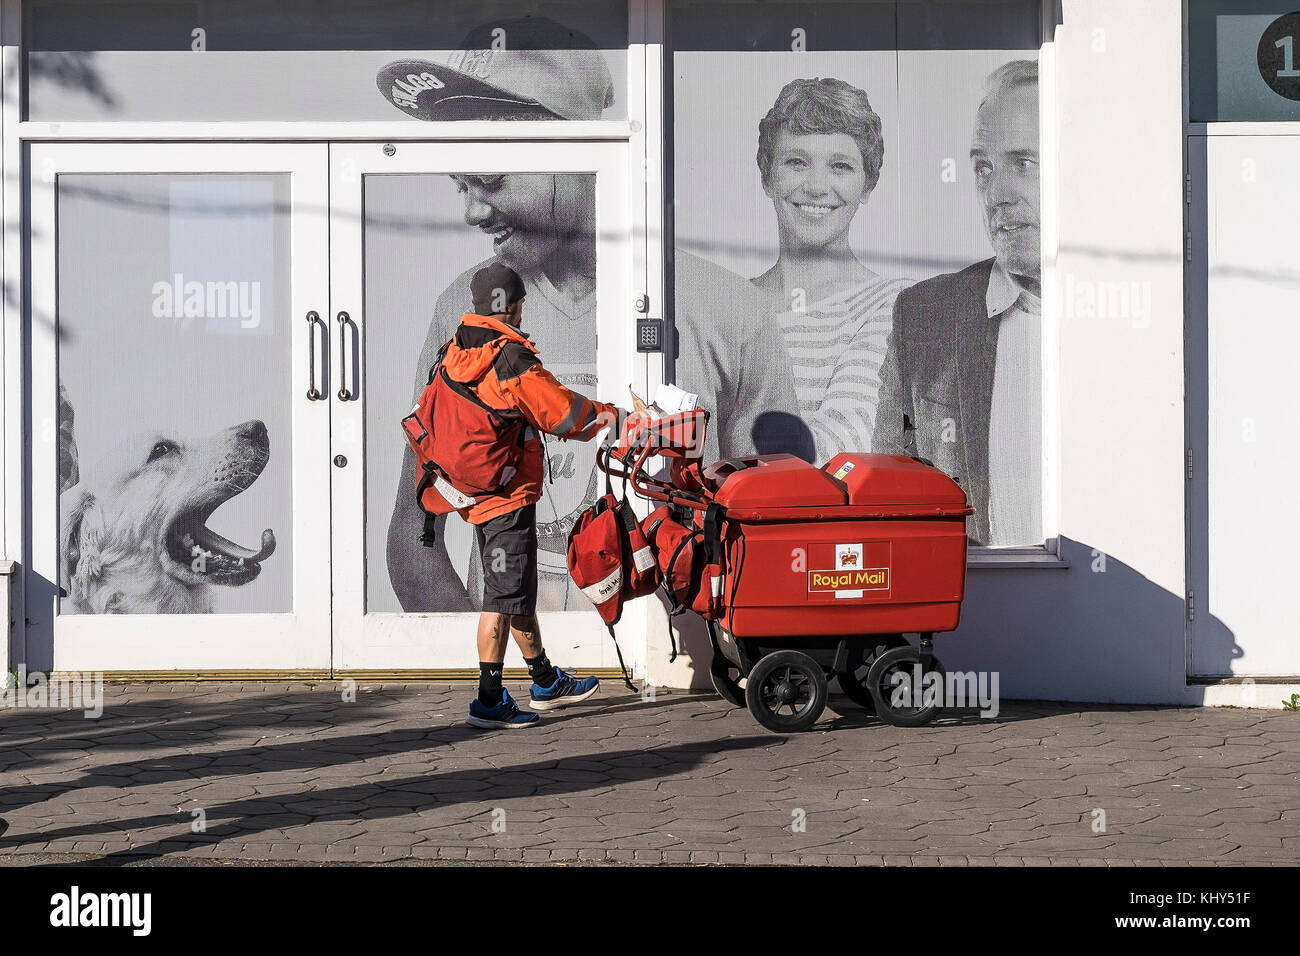 A Royal Mail postman postal worker. - Stock Image